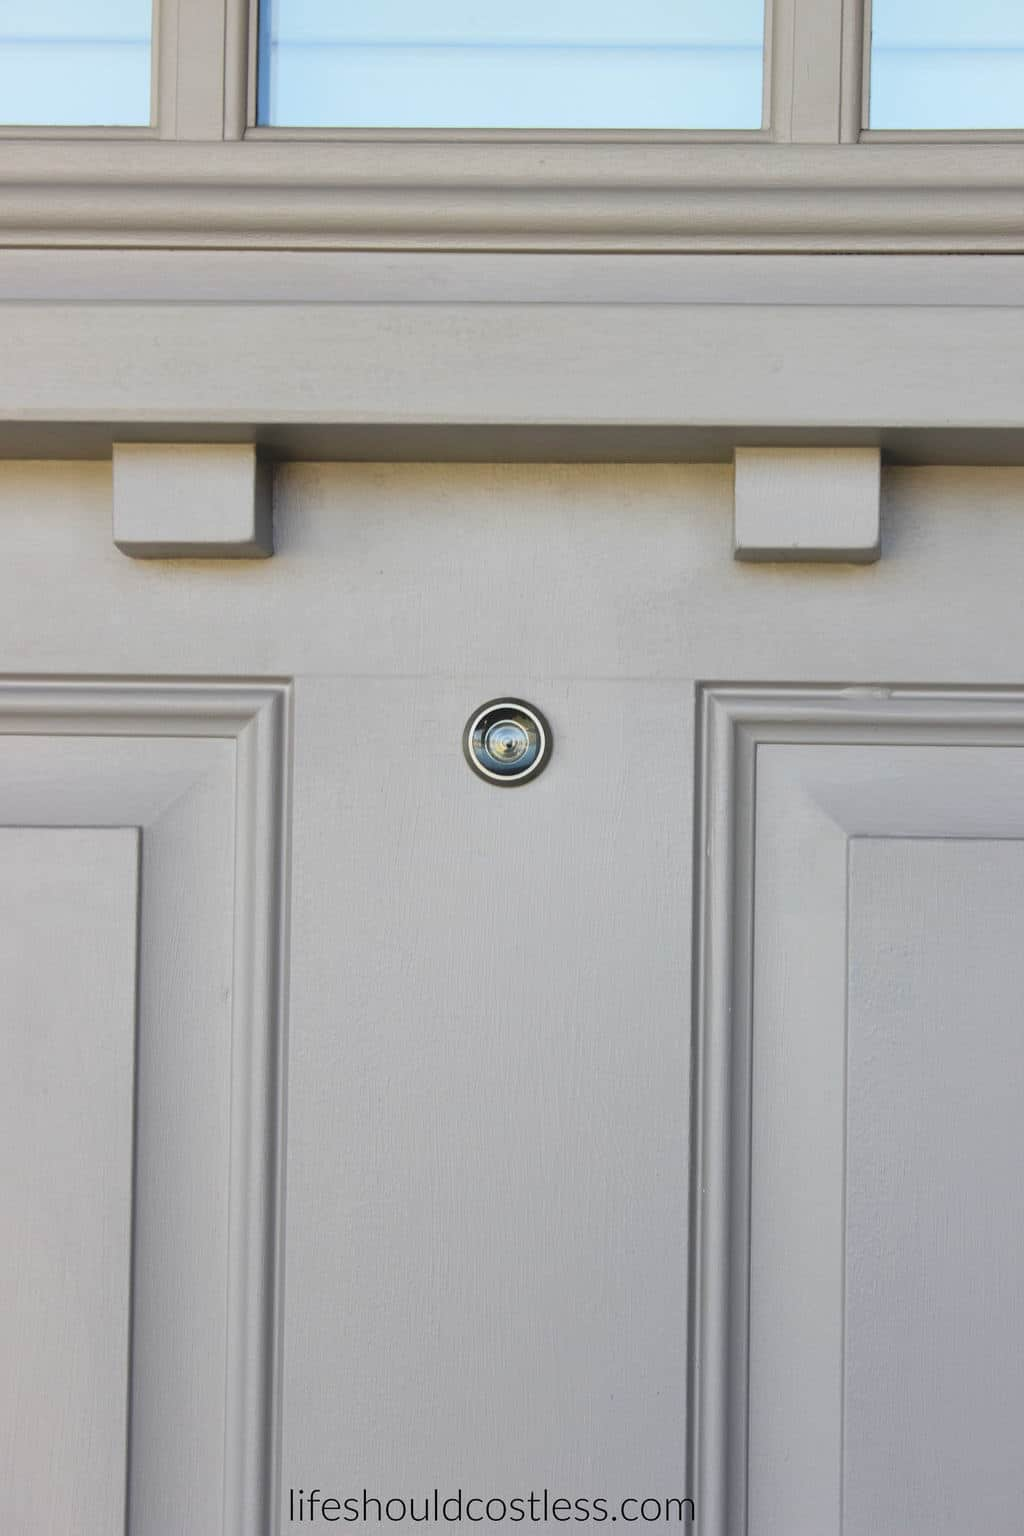 Ordinaire DIY How To Install A Peep Hole In Your Front Door.